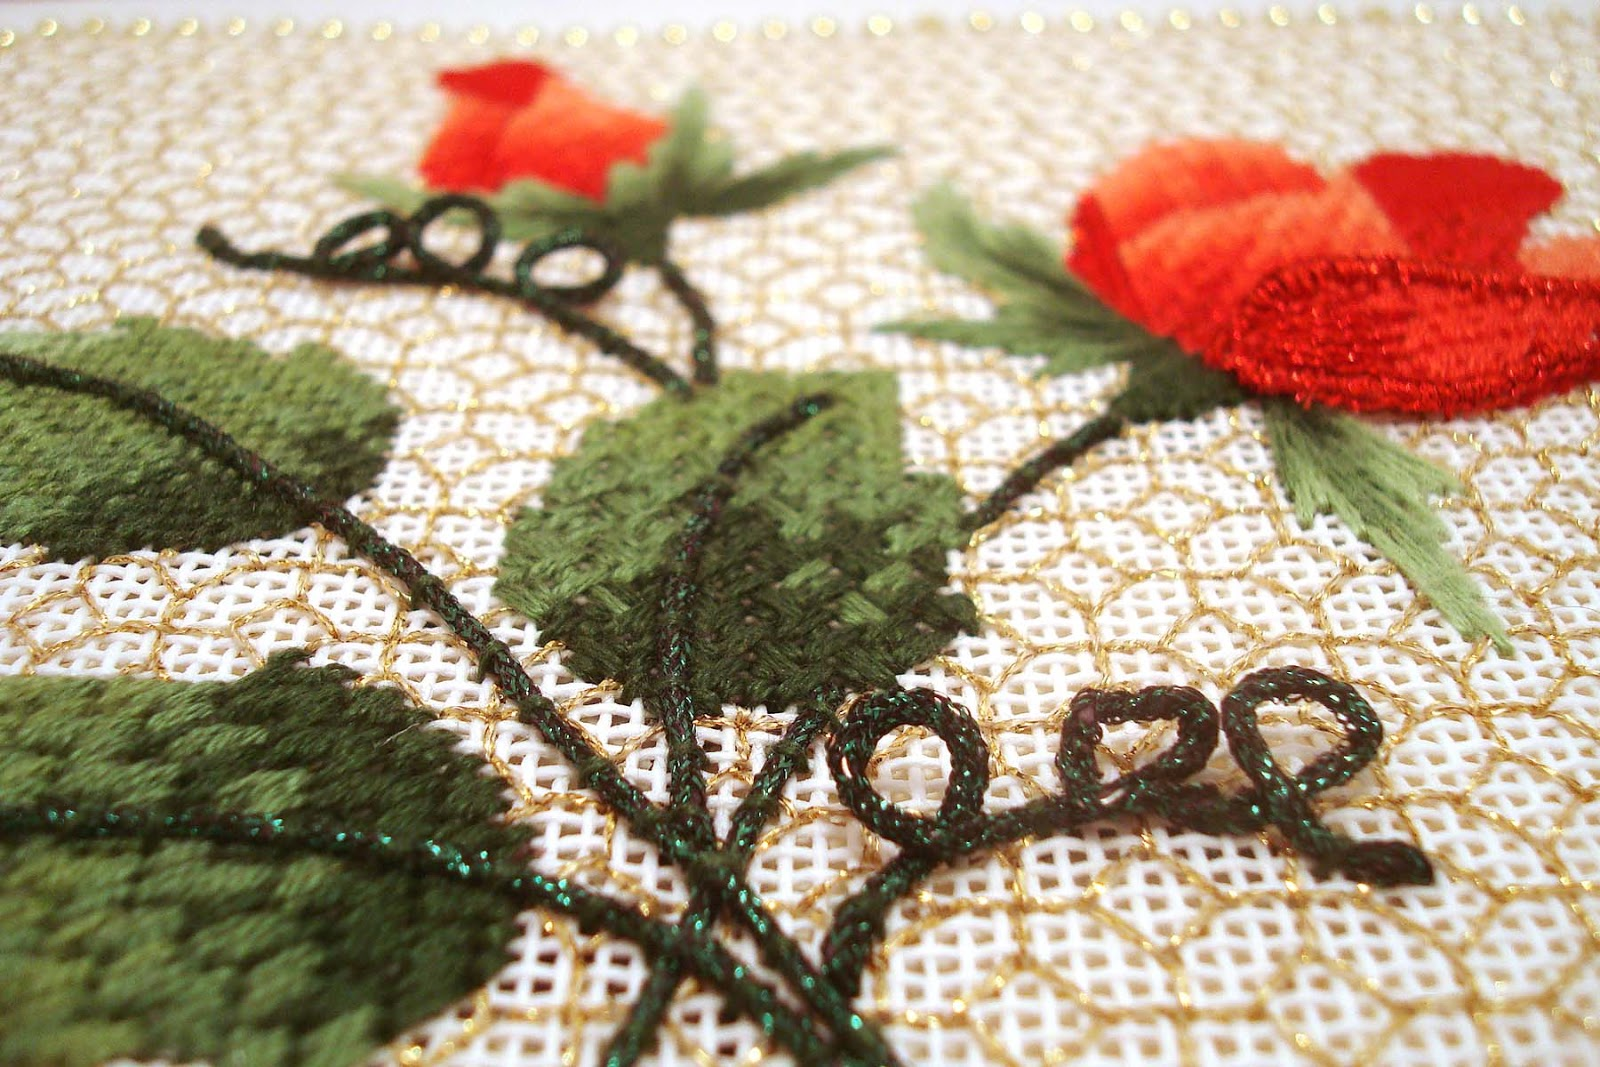 Kreinik thread blog a sparkling substitute for memory thread if youve heard the news that dmc is discontinuing their memory thread dont worry you can substitute kreinik wired braid the only difference is that nvjuhfo Image collections